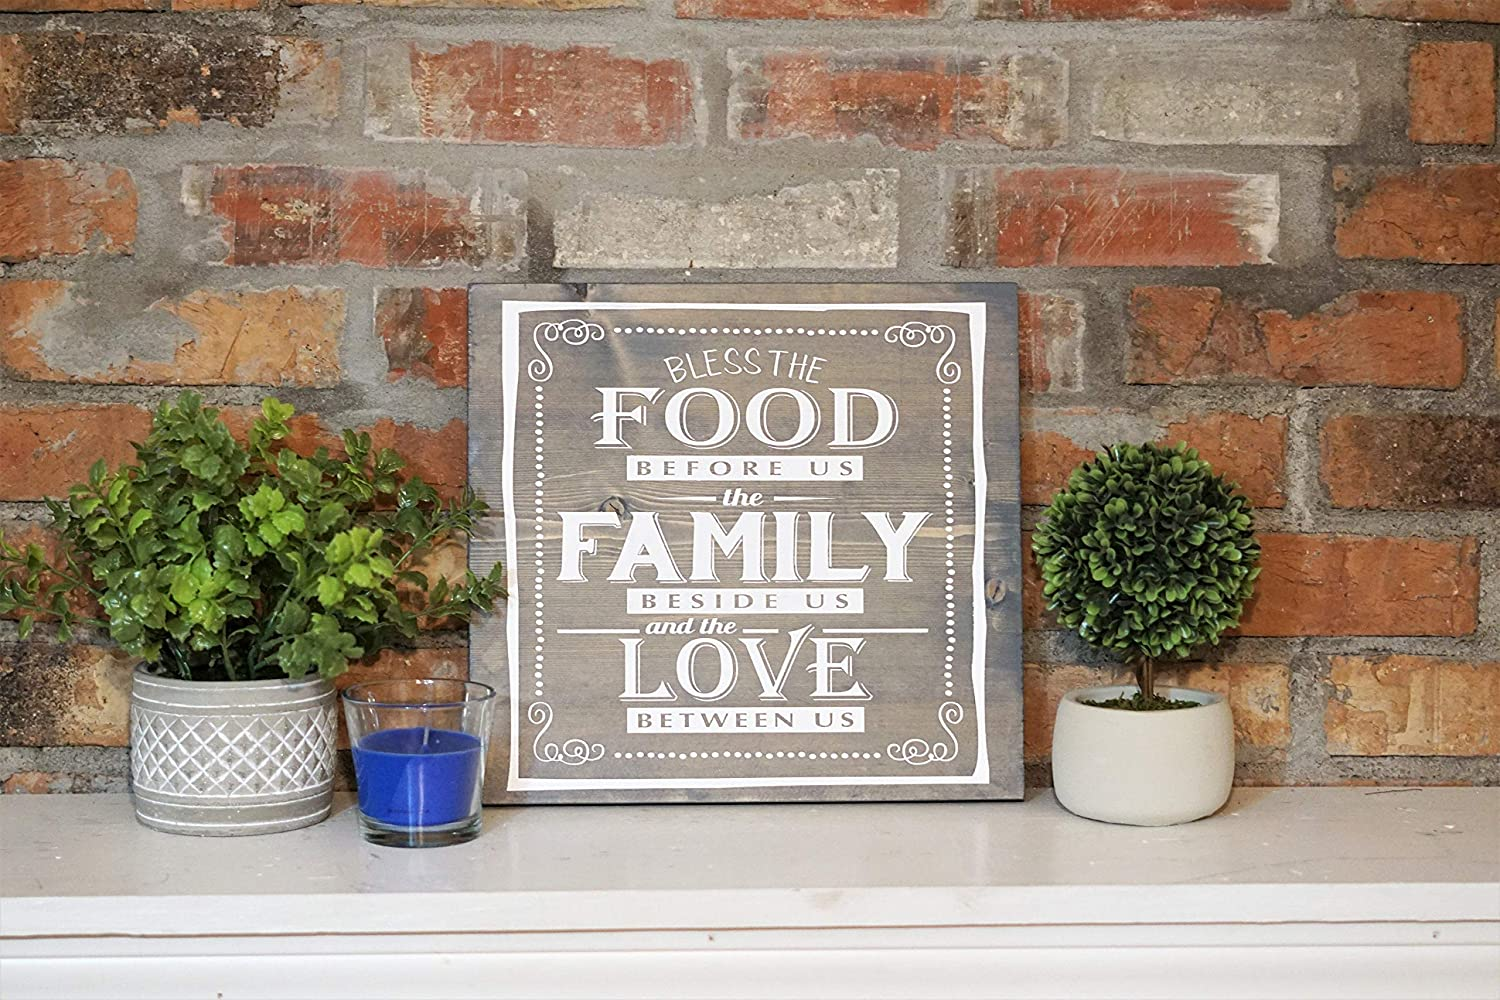 Bless The Food, Family and Love Wall Art Sign Hanging Printed Wood Plaque for Outdoor Indoor Home Rustic Farmhouse Porch Wall Decor 12